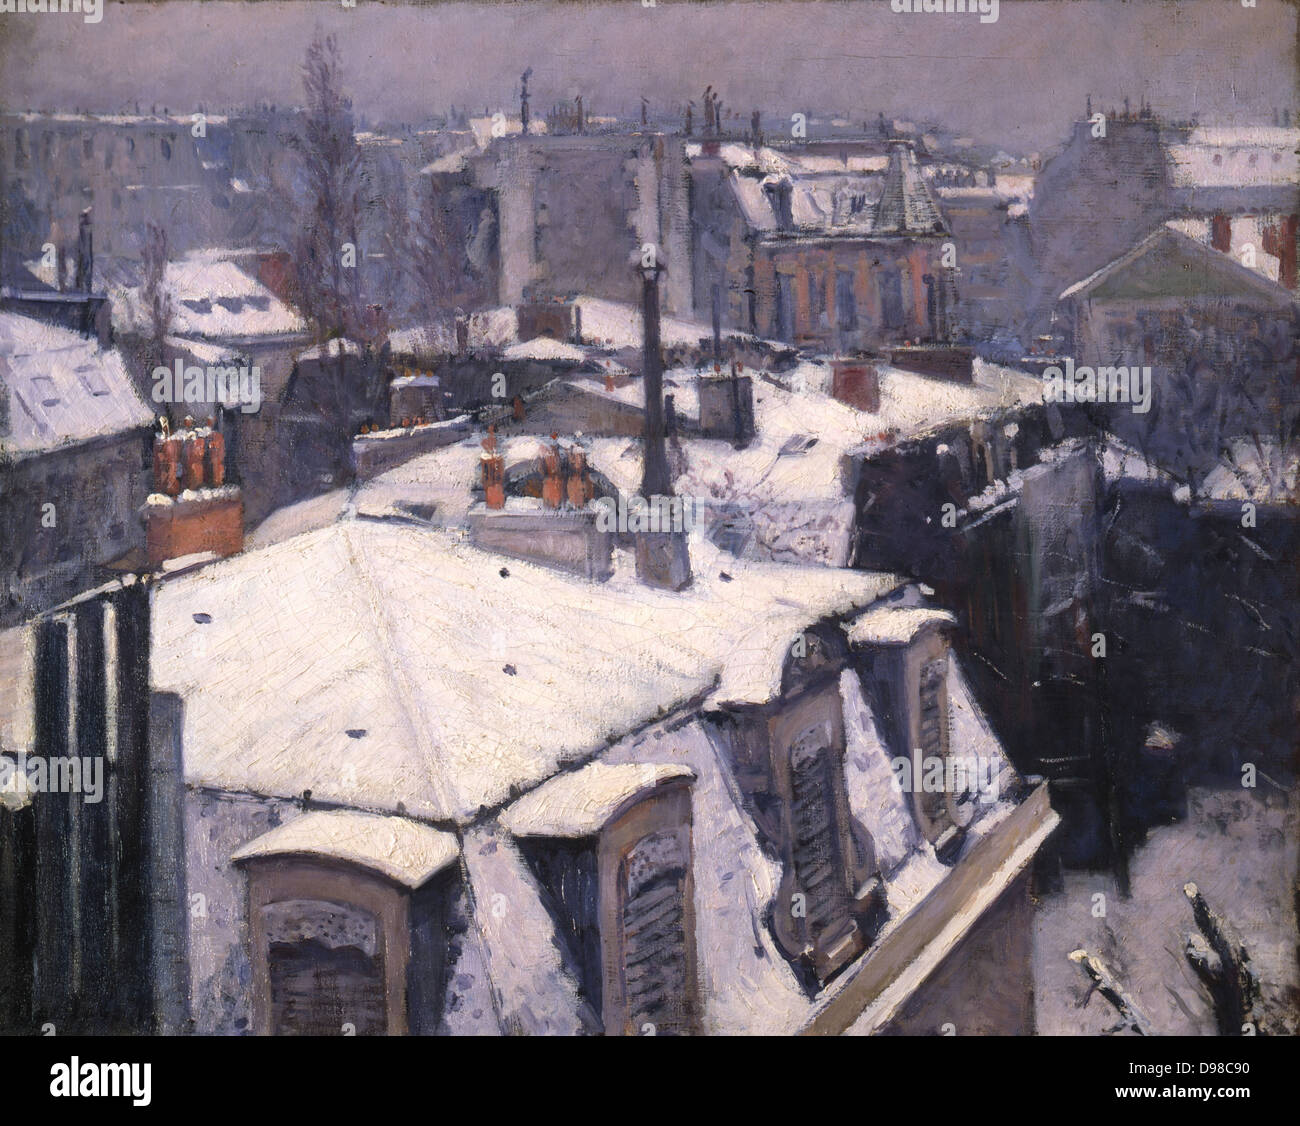 Rooftops in the Snow' 1878. Gustave Caillebotte (1848-1894) French Impressionist painter. - Stock Image